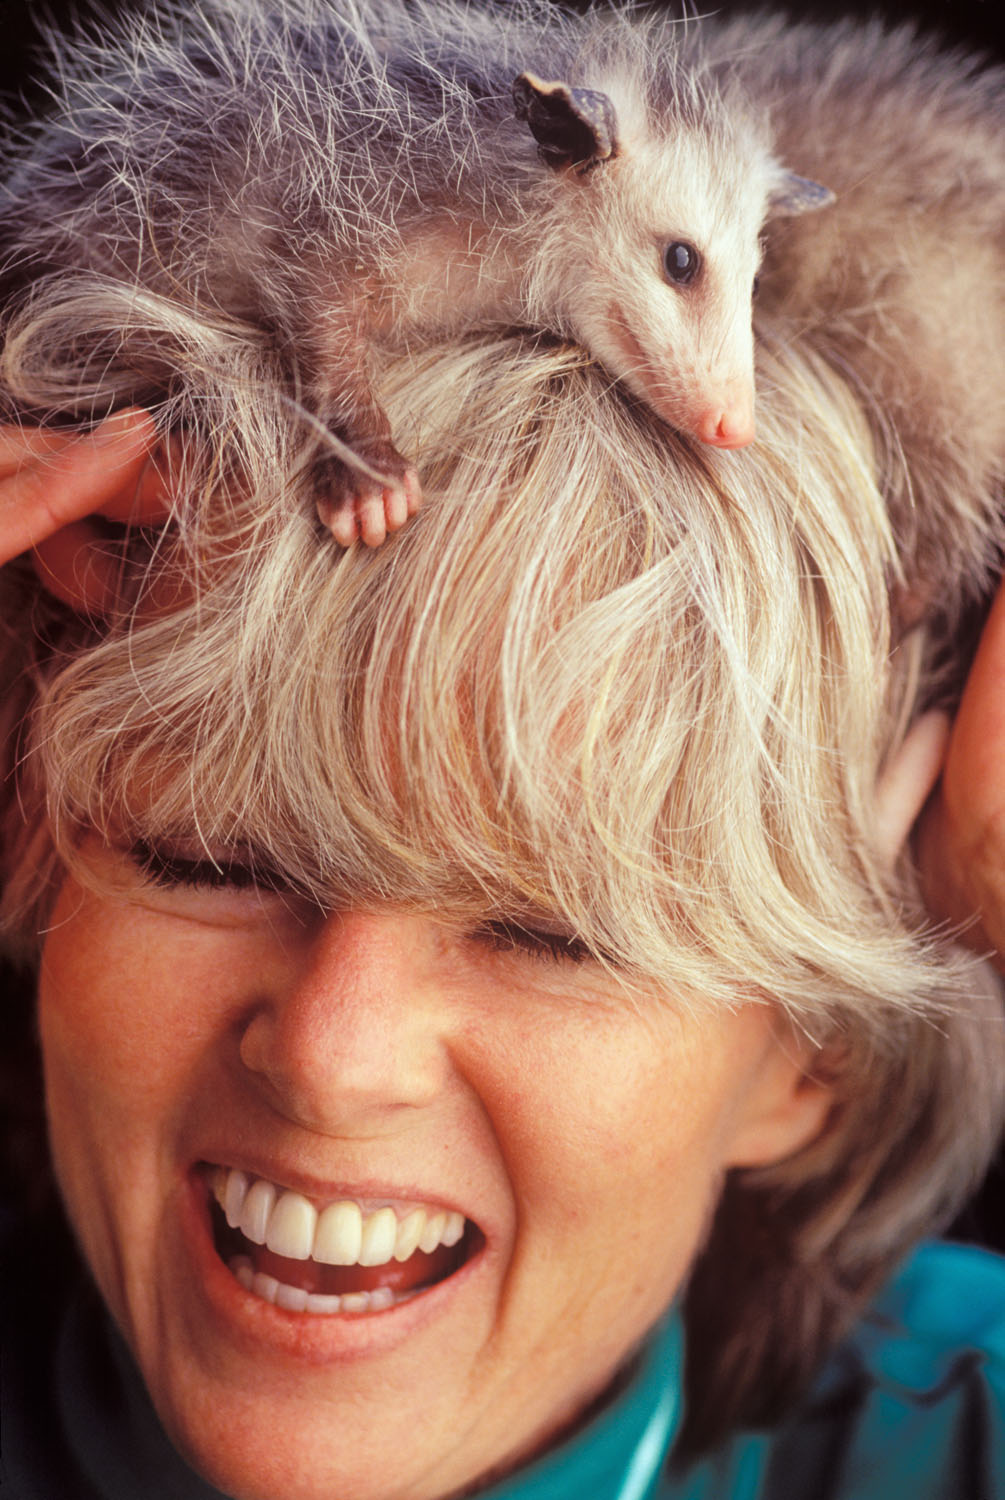 portrait of wildlife rescuer and young opossums